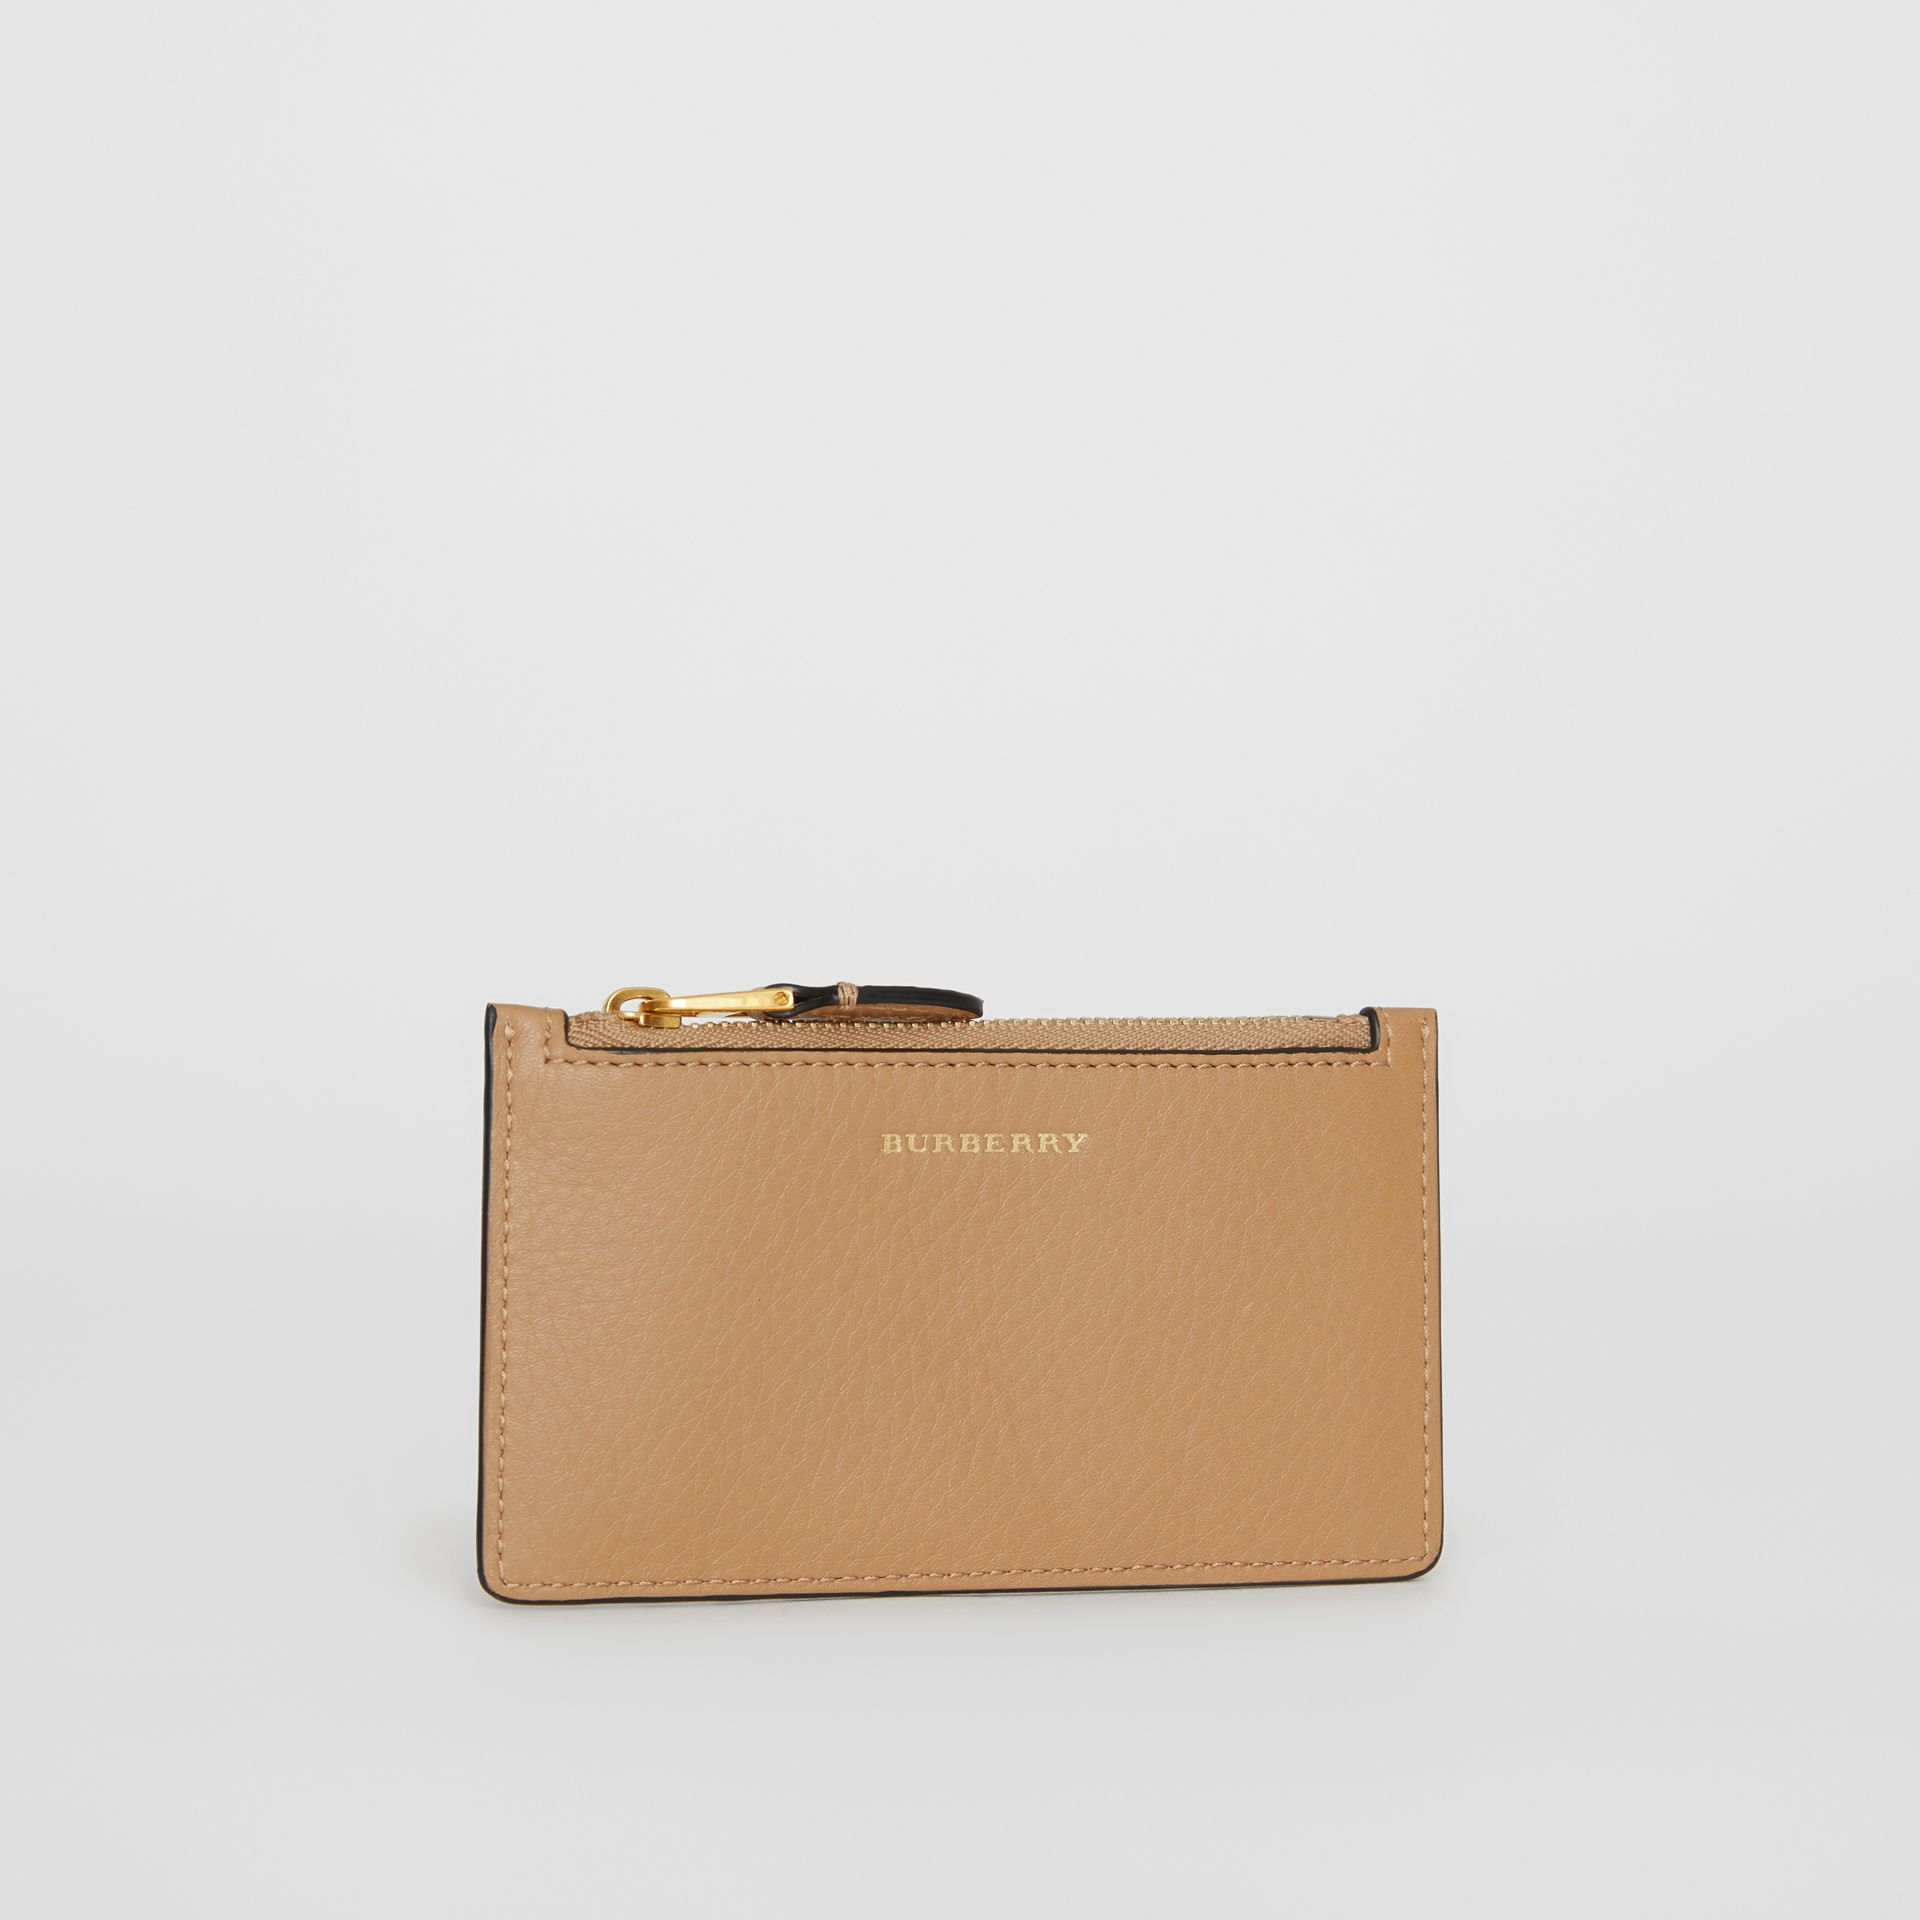 Two-tone Leather Card Case in Light Camel - Women | Burberry Canada - gallery image 4